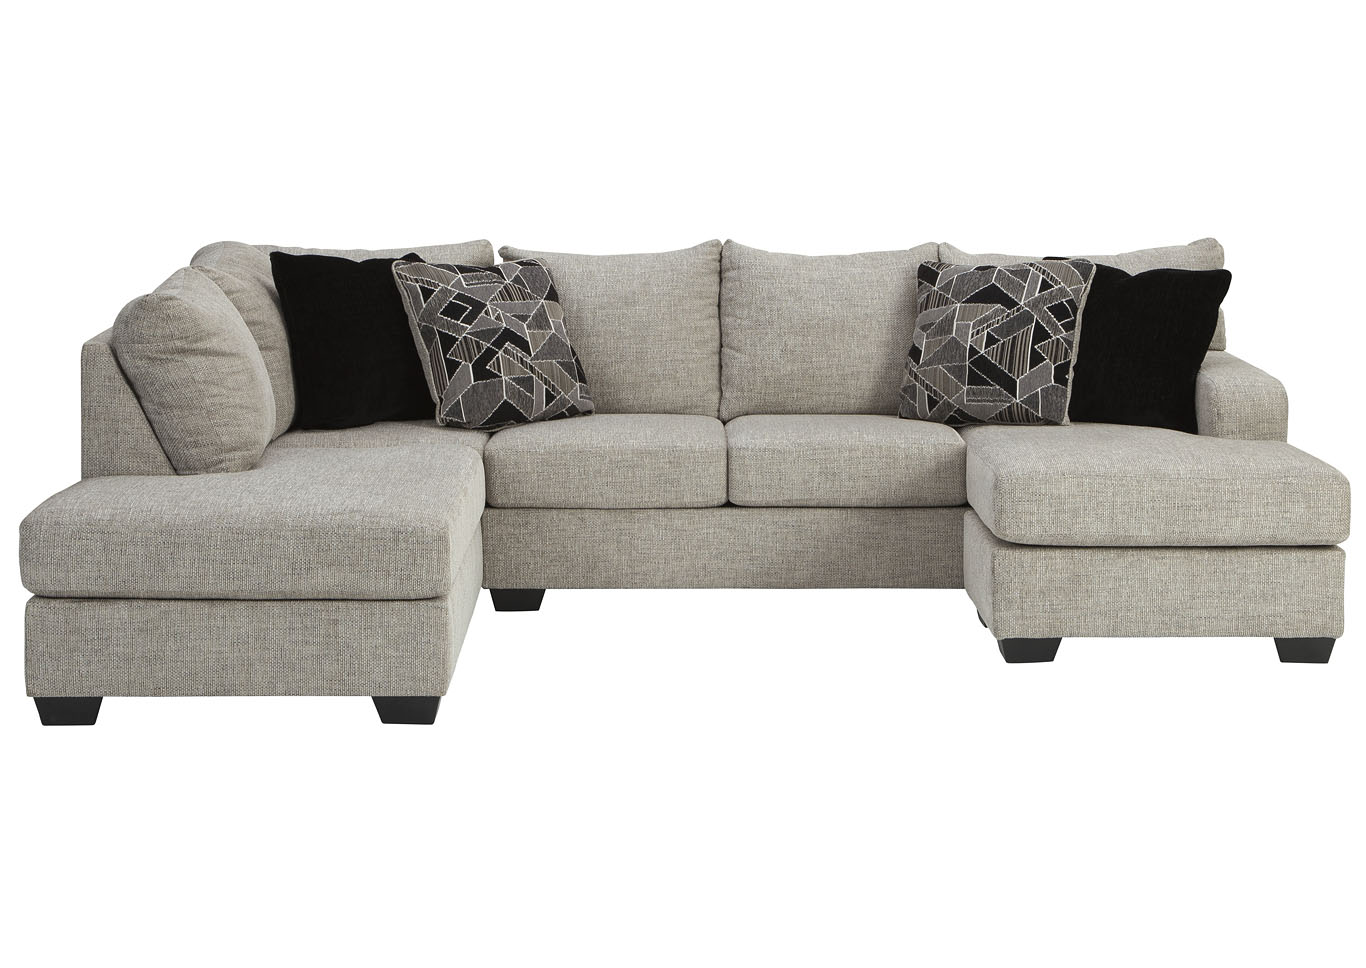 Megginson Storm LAF Chaise End Sectional,Benchcraft